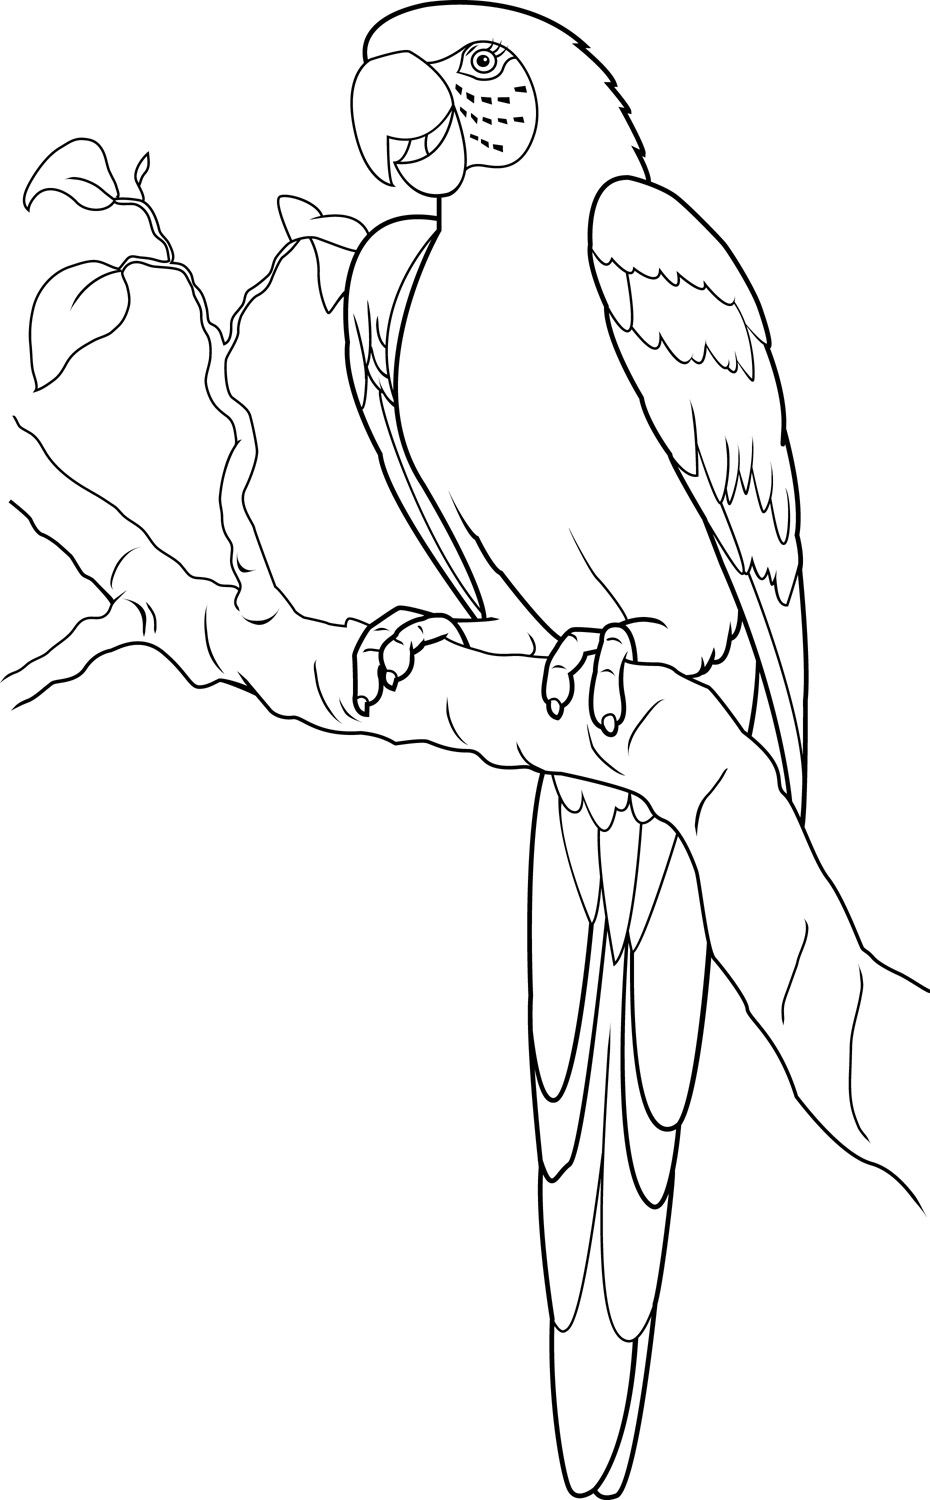 Macaw Google Search Parrot Drawing Bird Coloring Pages Bird